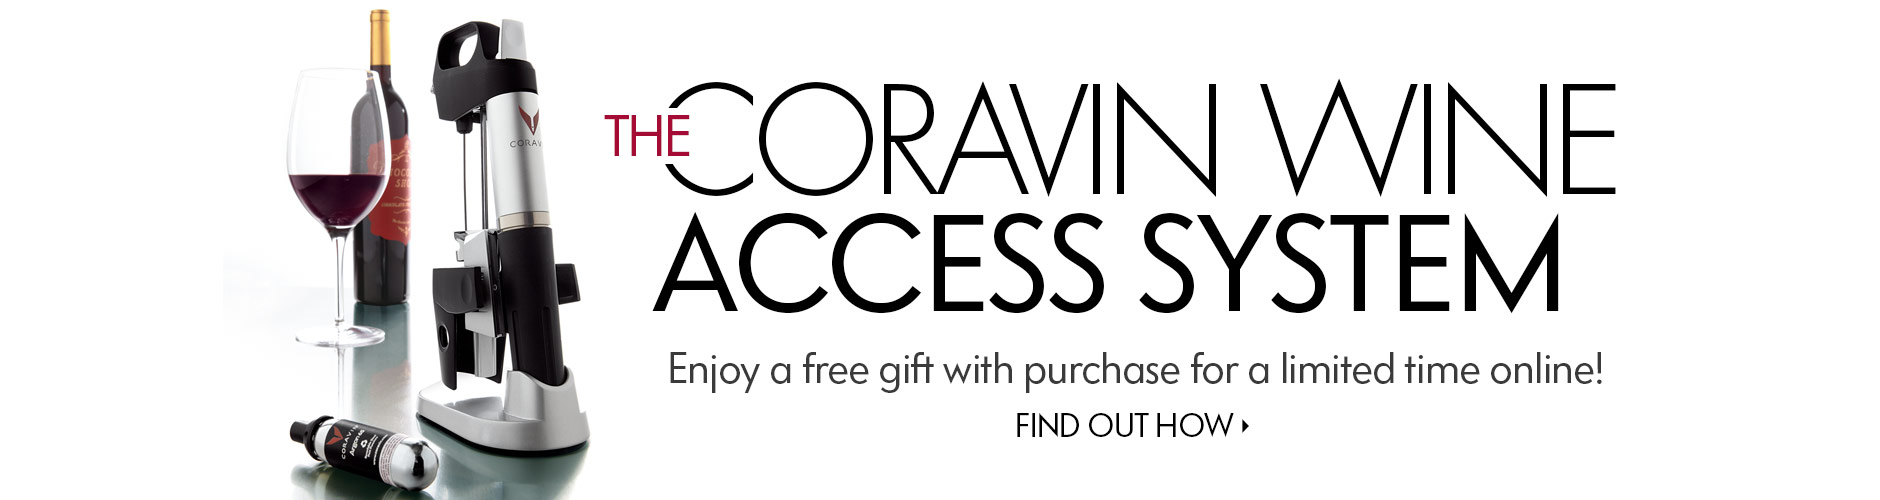 THE CORAVIN WINE ACCESS SYSTEM